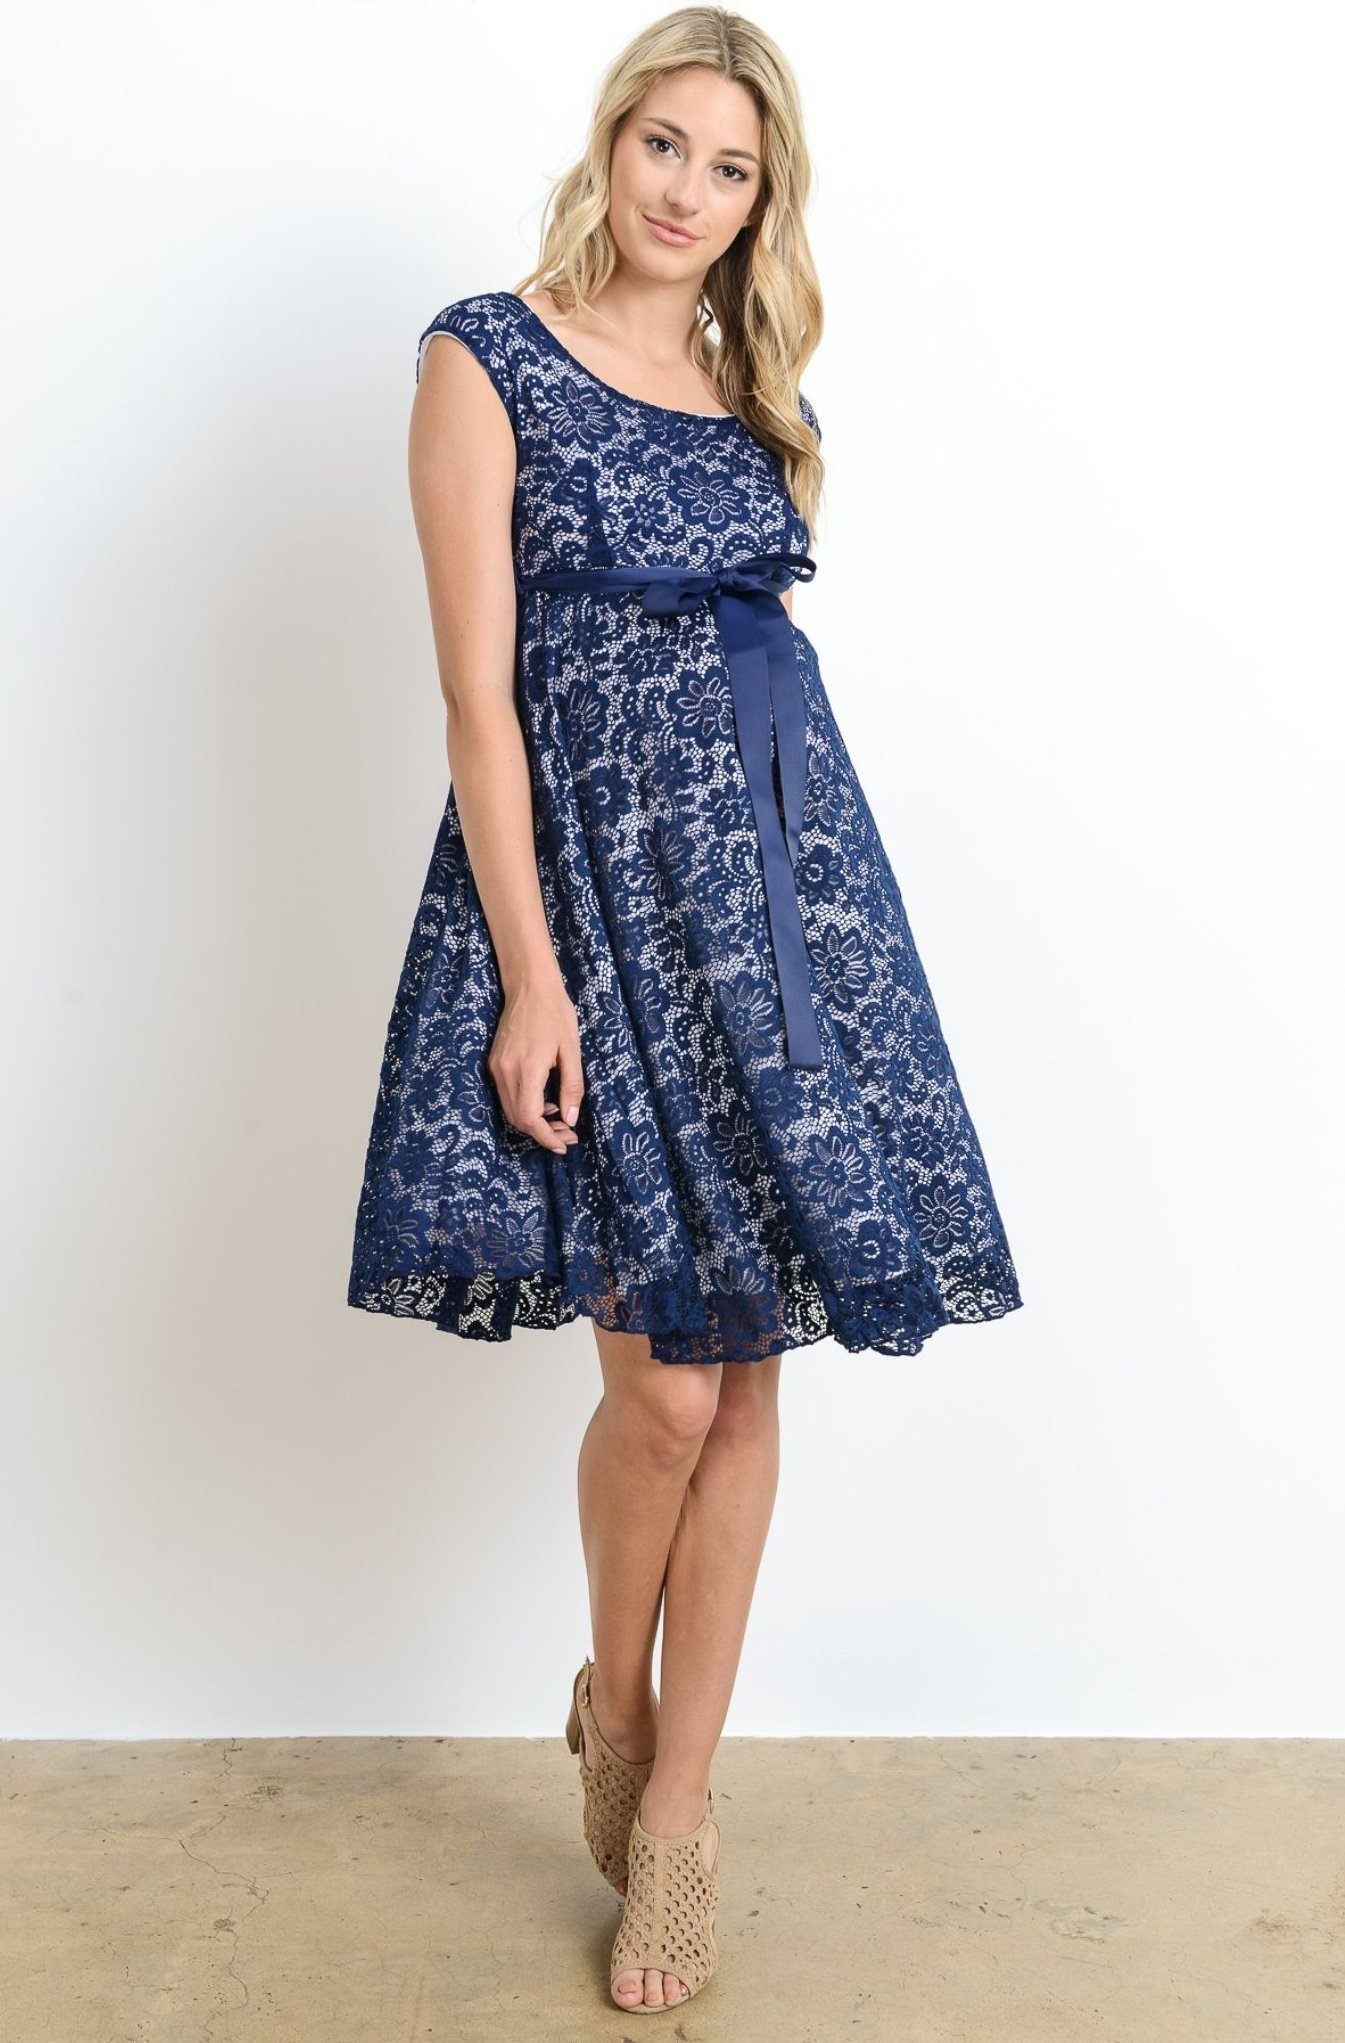 7cc8f47c40fff Navy Blue & White Lace Baby Shower, Evening, Formal Maternity Dress ...